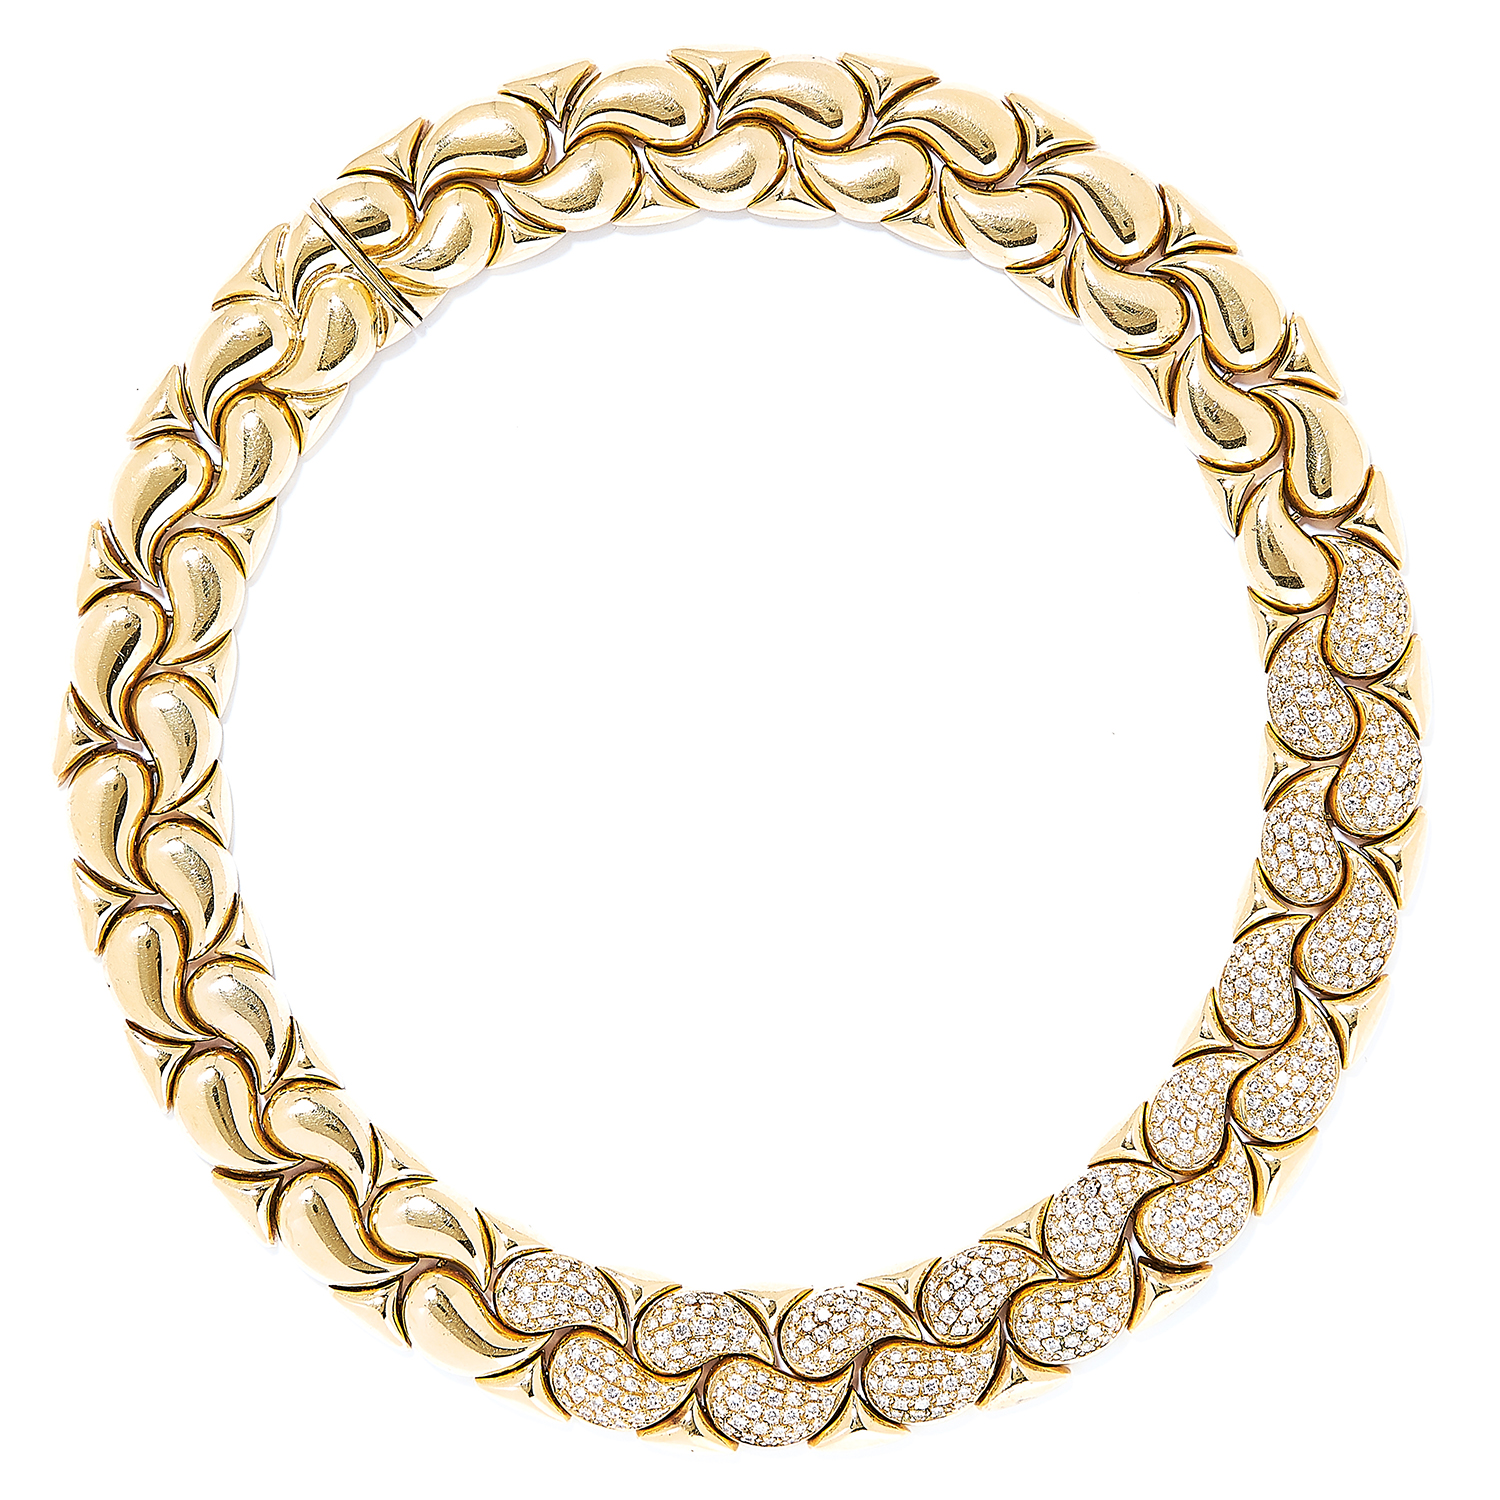 'CASMIR' DIAMOND NECKLACE AND BRACELET SUITE in 18ct yellow gold, in the style of Chopard, each - Bild 2 aus 4